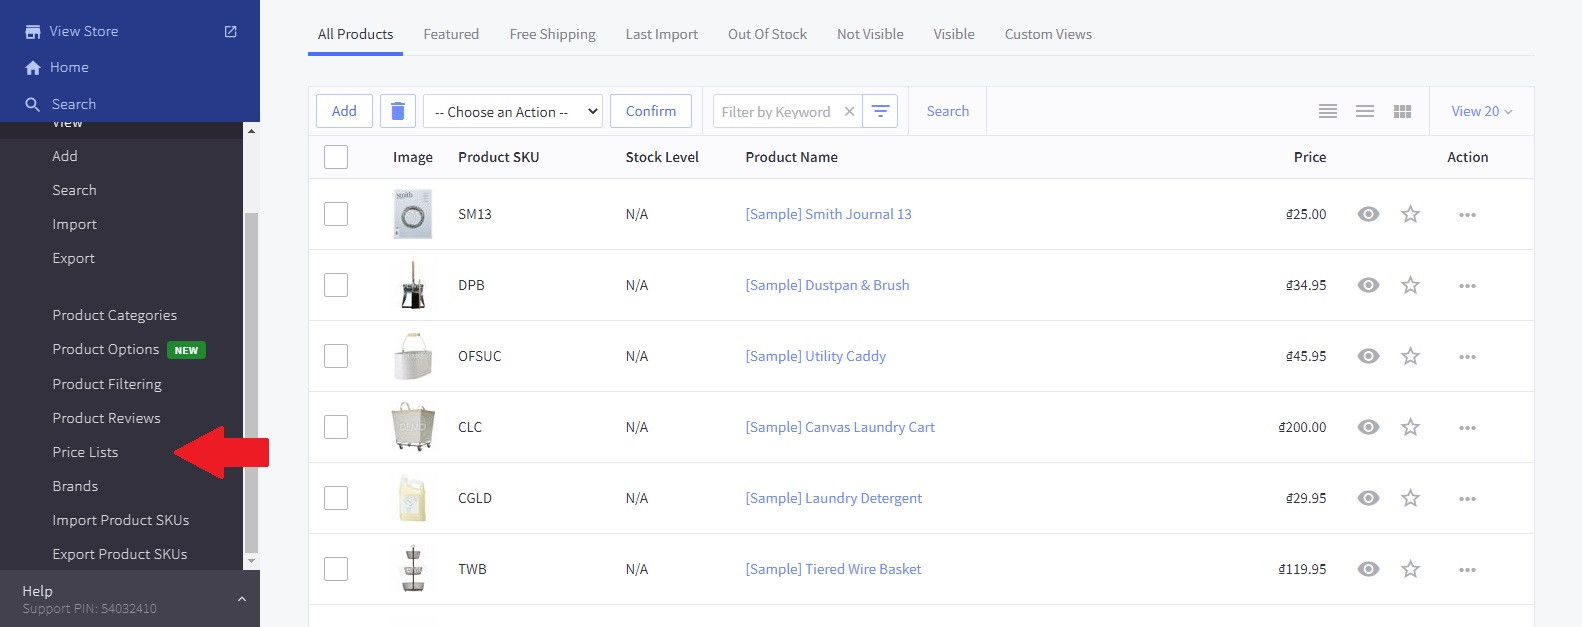 BigCommerce Price Lists page